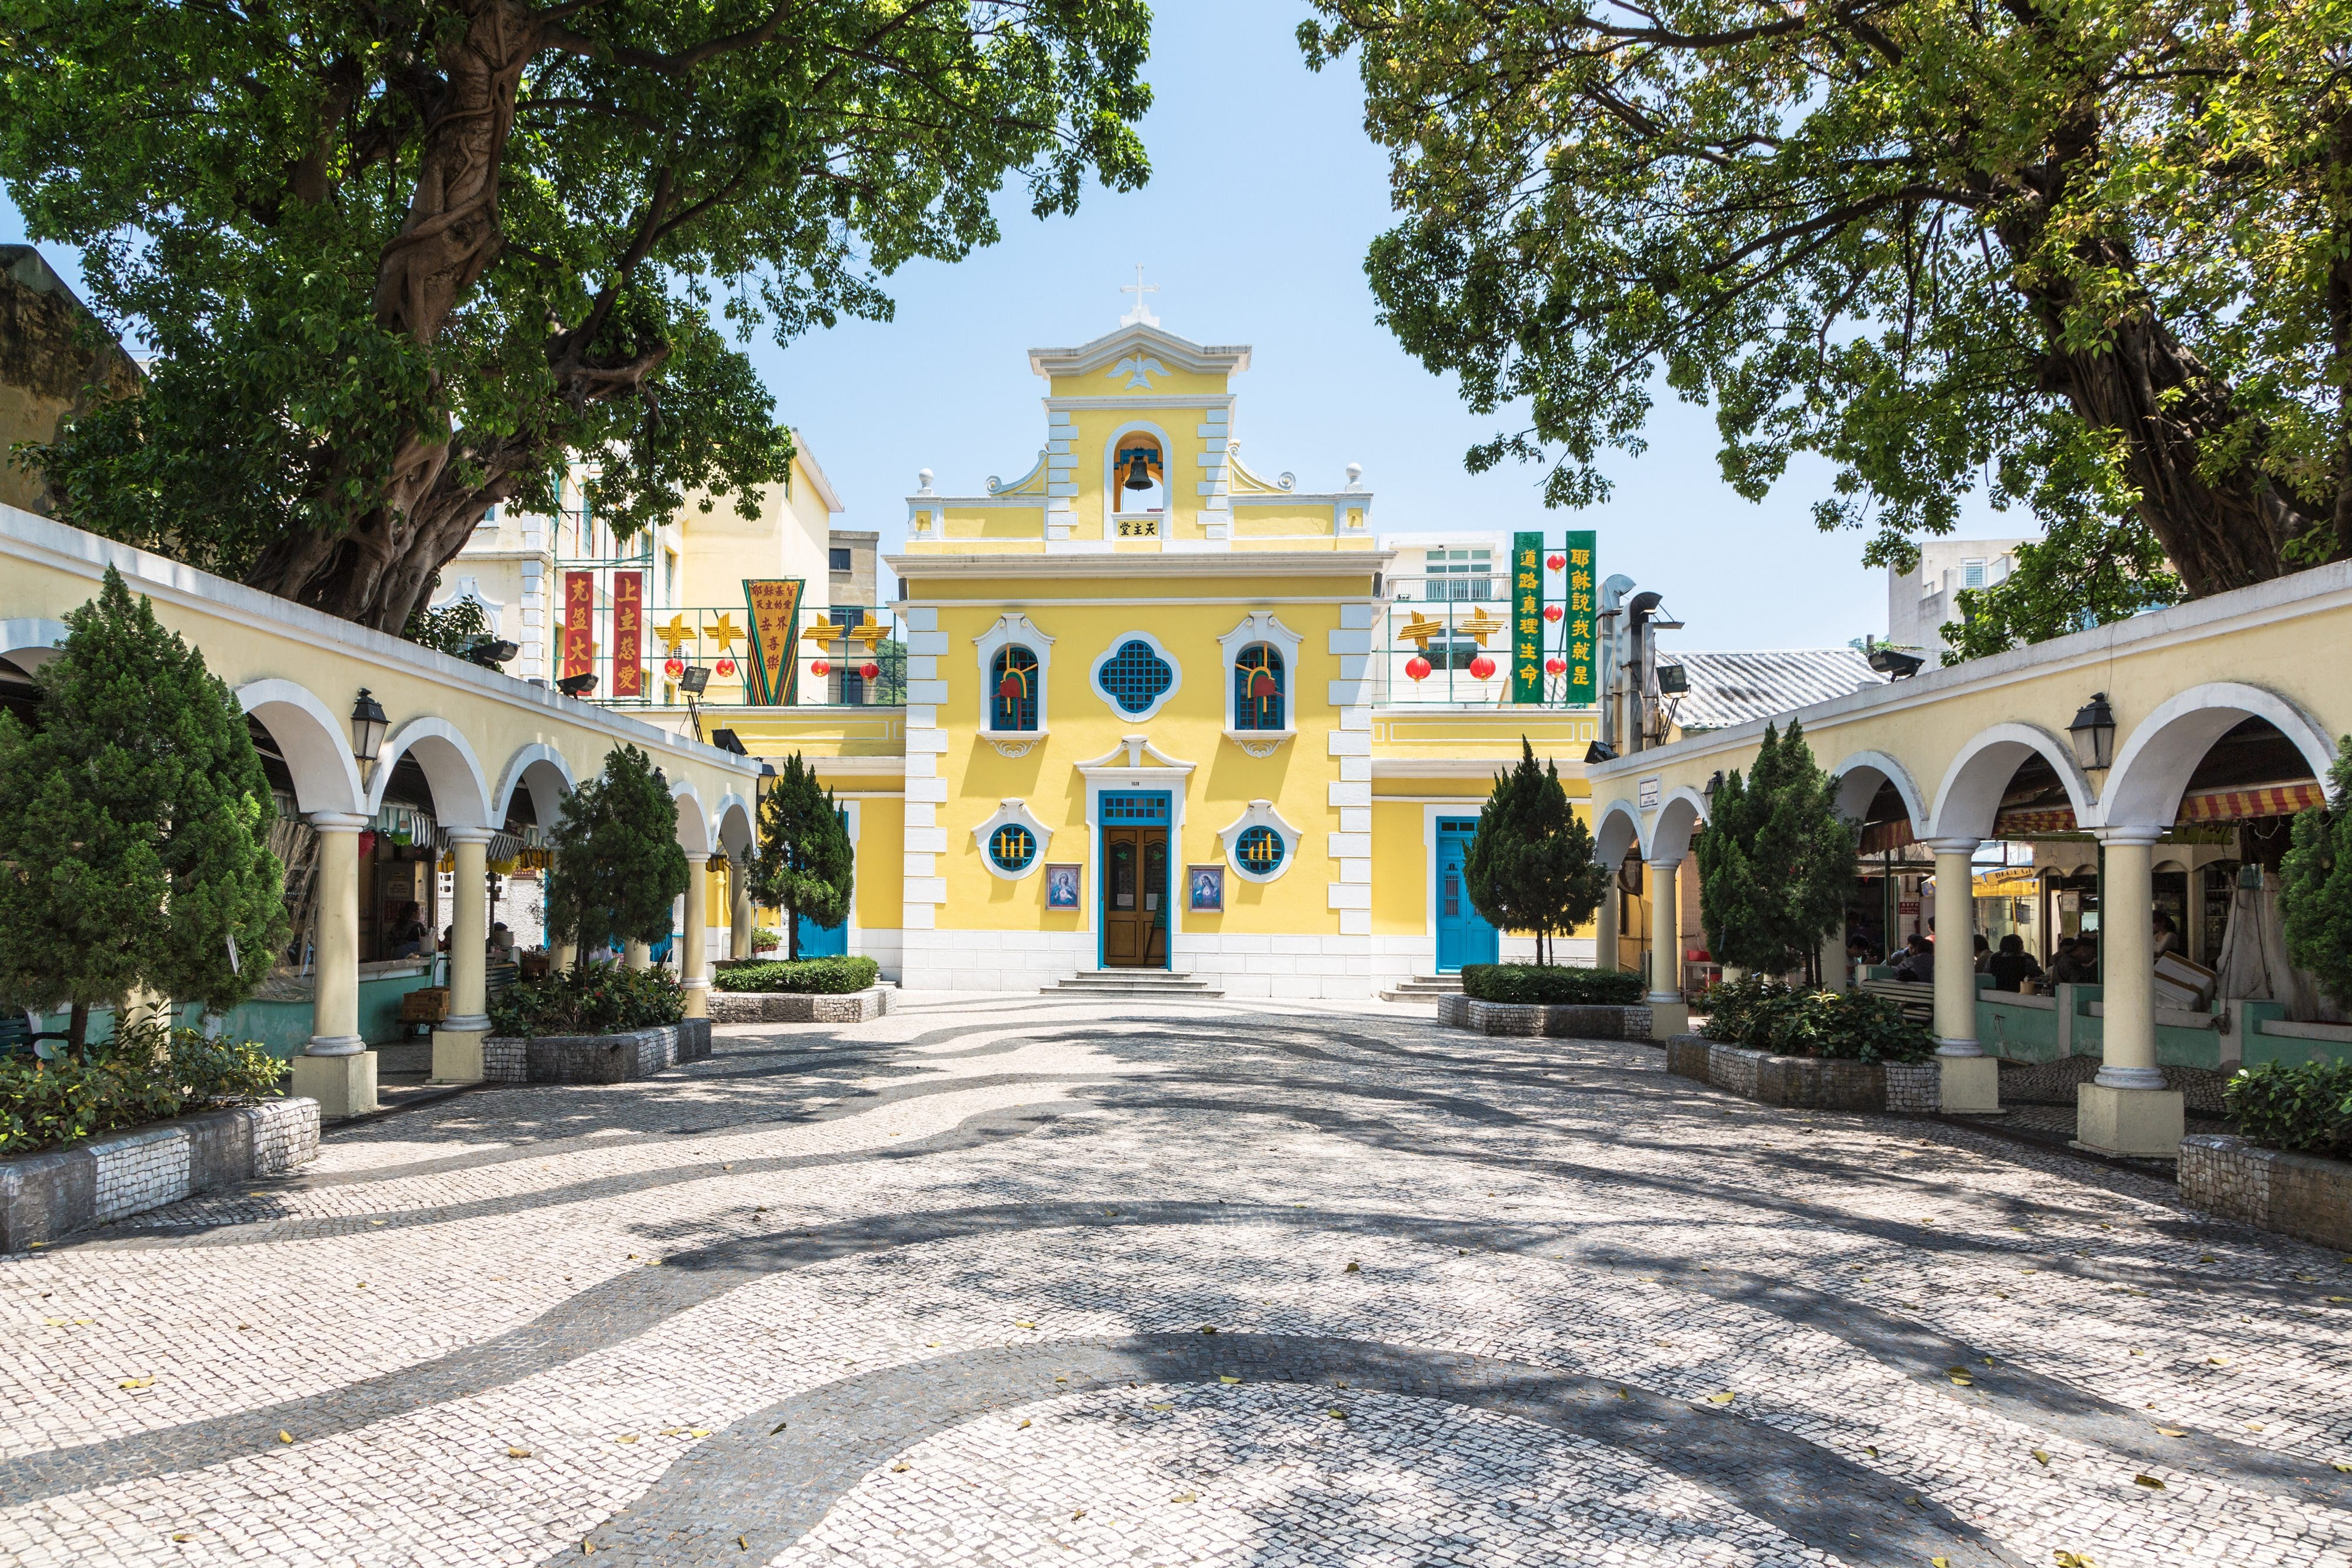 Church square in Coloane with its bright yellow and white church